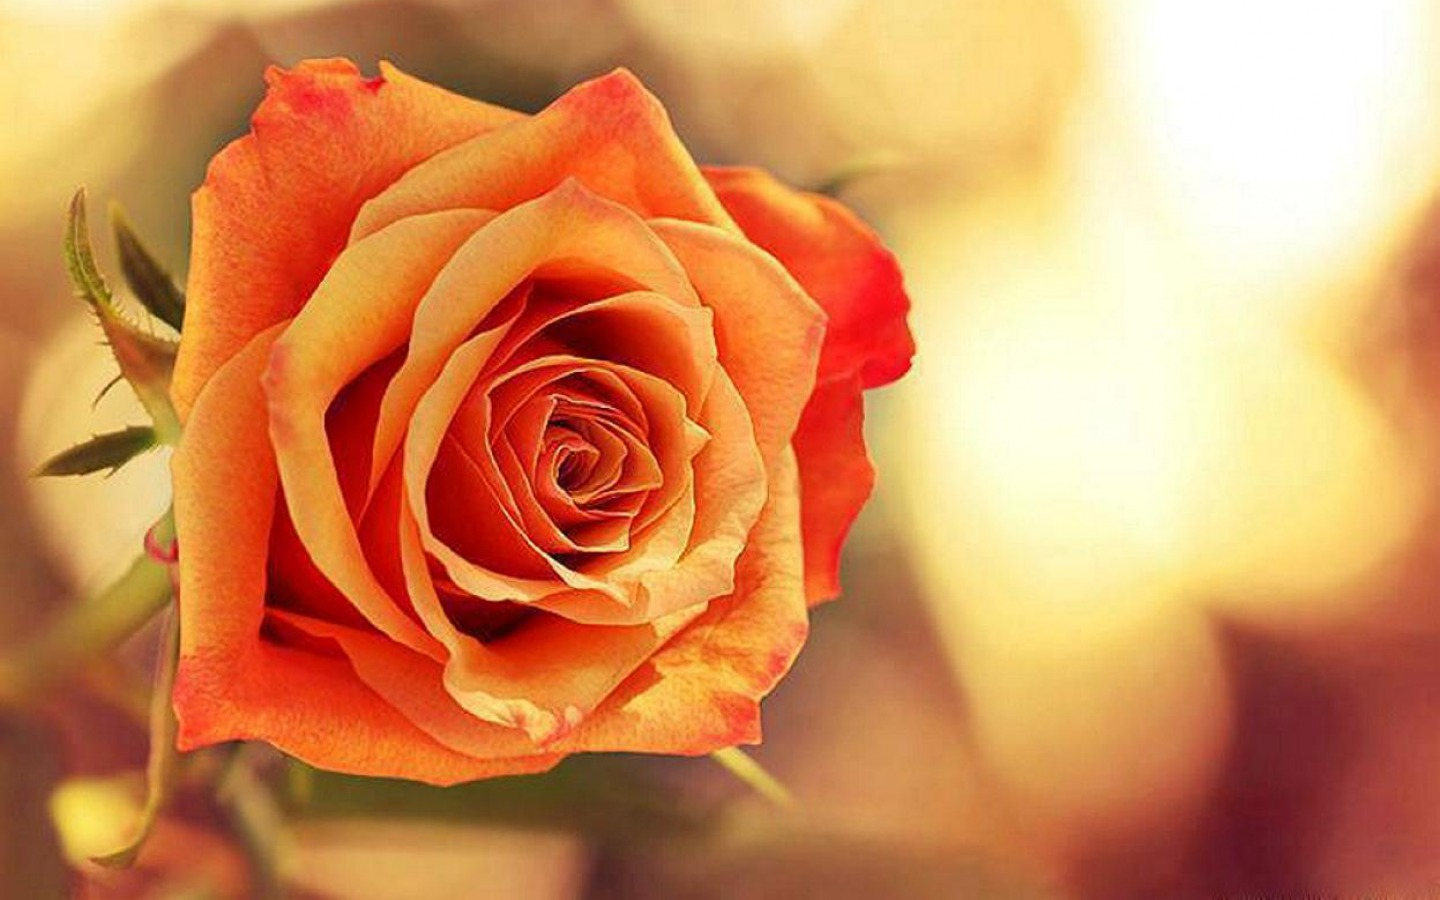 Flowers images Rose HD wallpaper and background photos